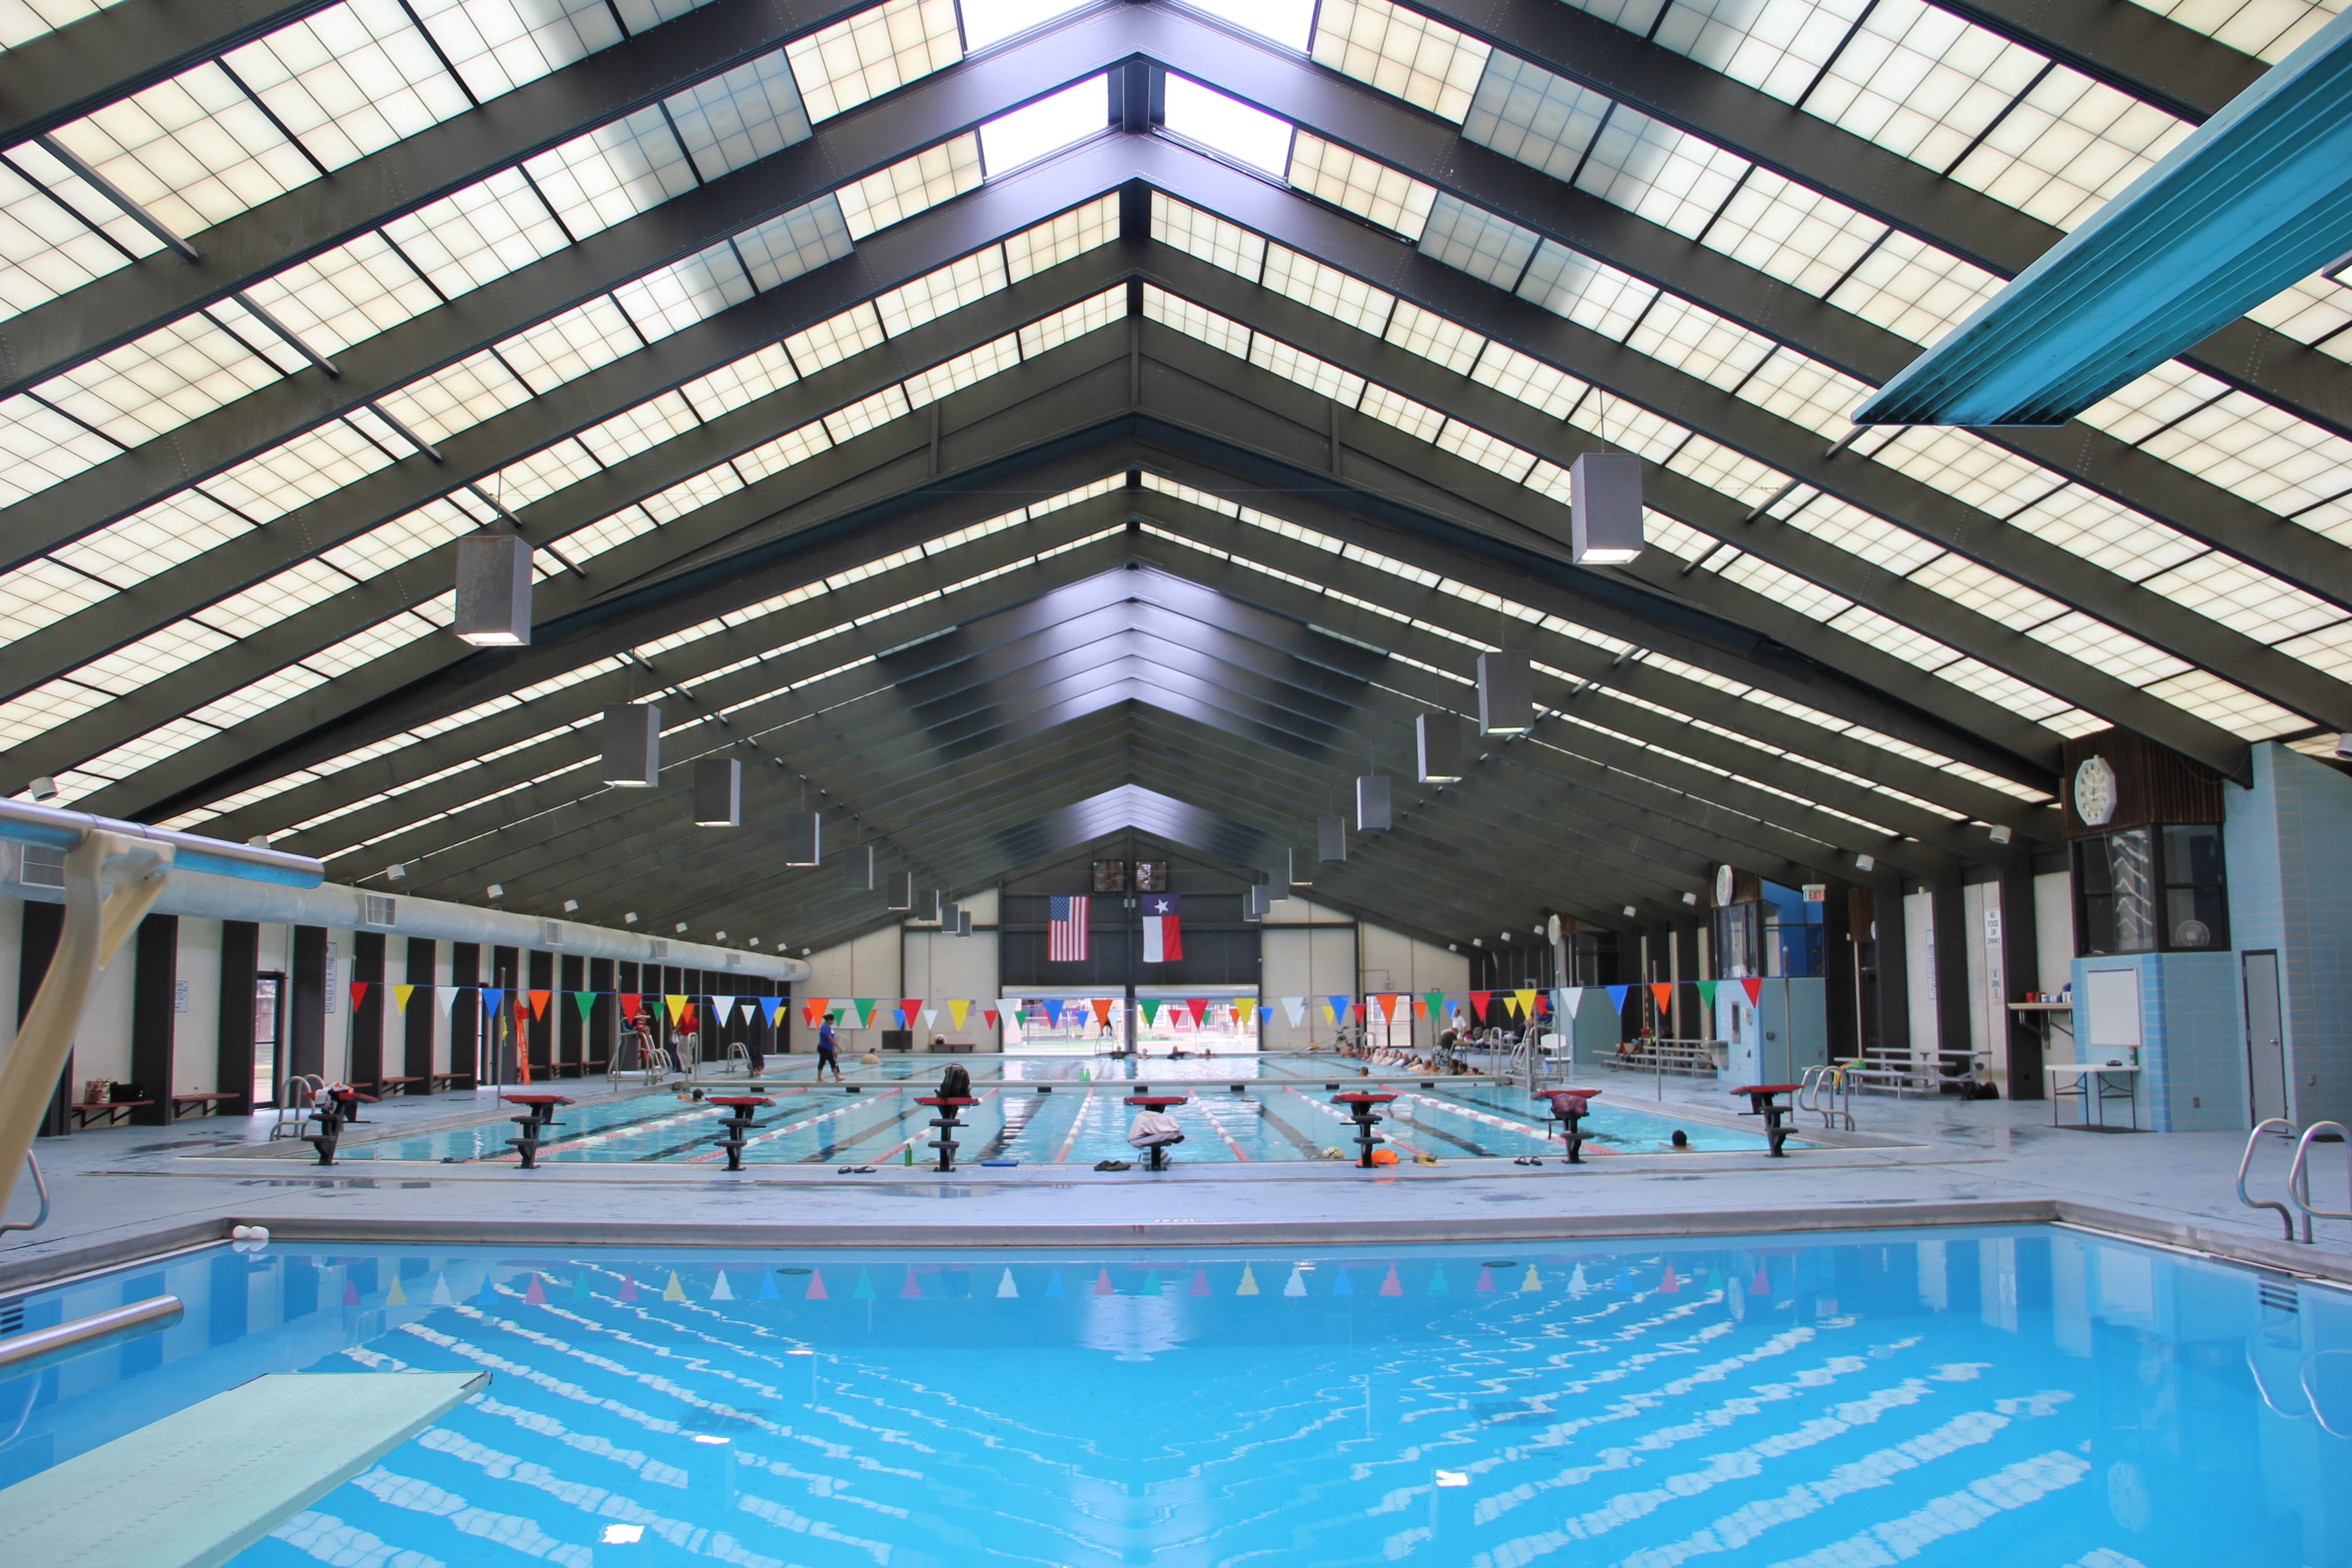 San antonio natatorium the city of san antonio official city website City of san antonio swimming pools